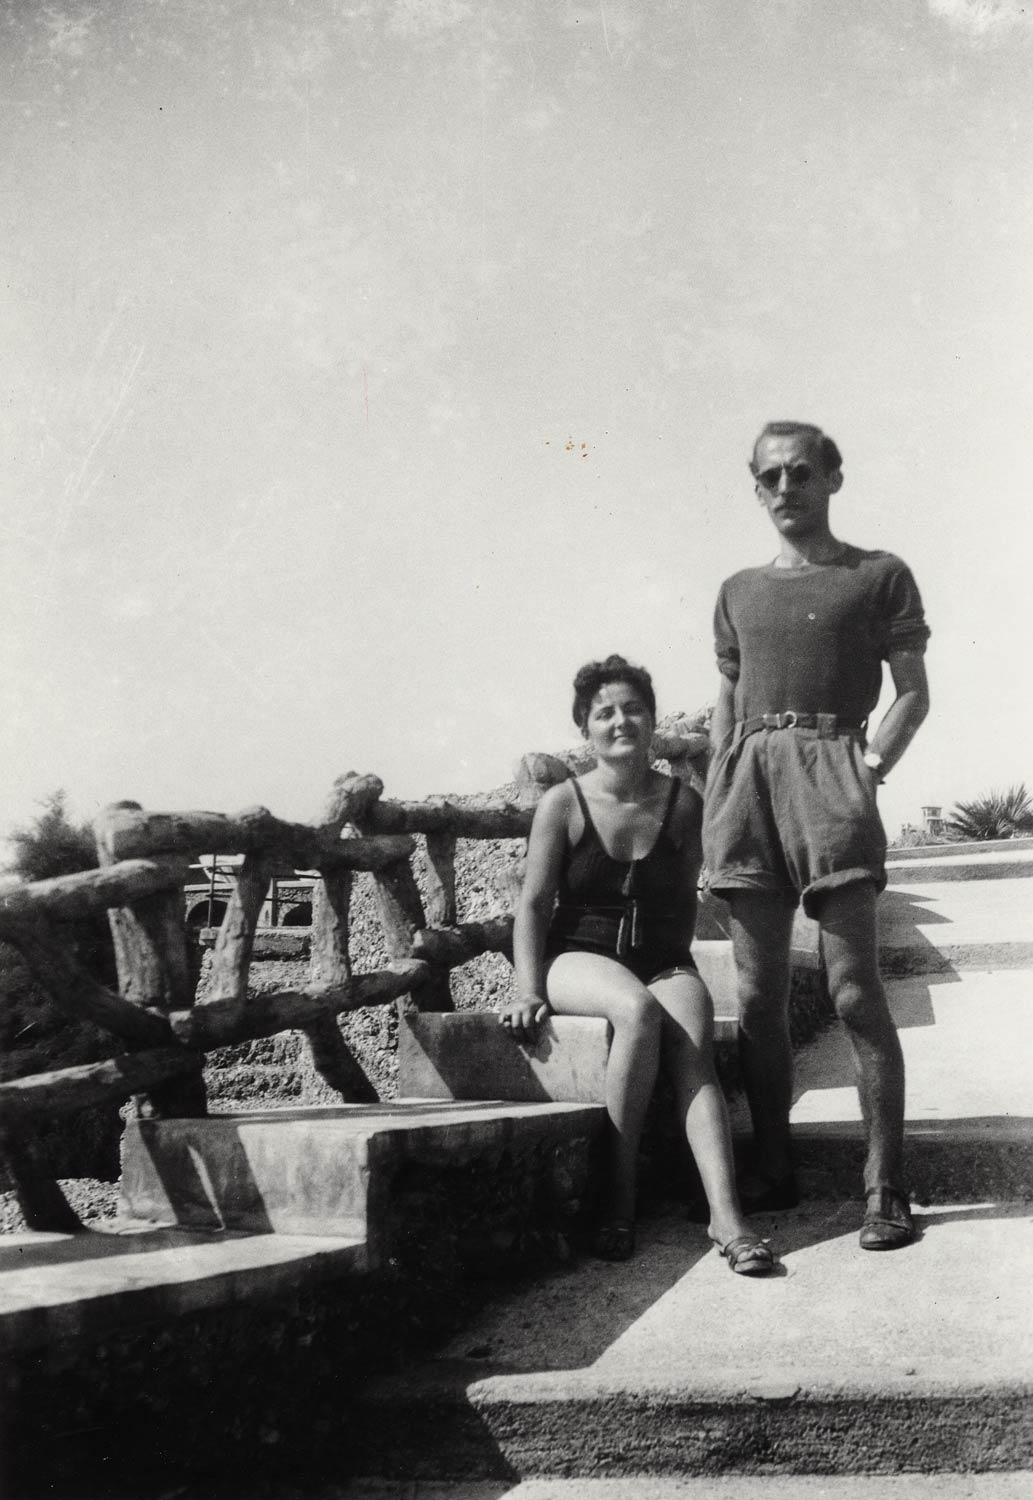 Steinberg with Ada Ongari, c. 1937-38. Saul Steinberg Papers, Beinecke Rare Book and Manuscript Library, Yale University.